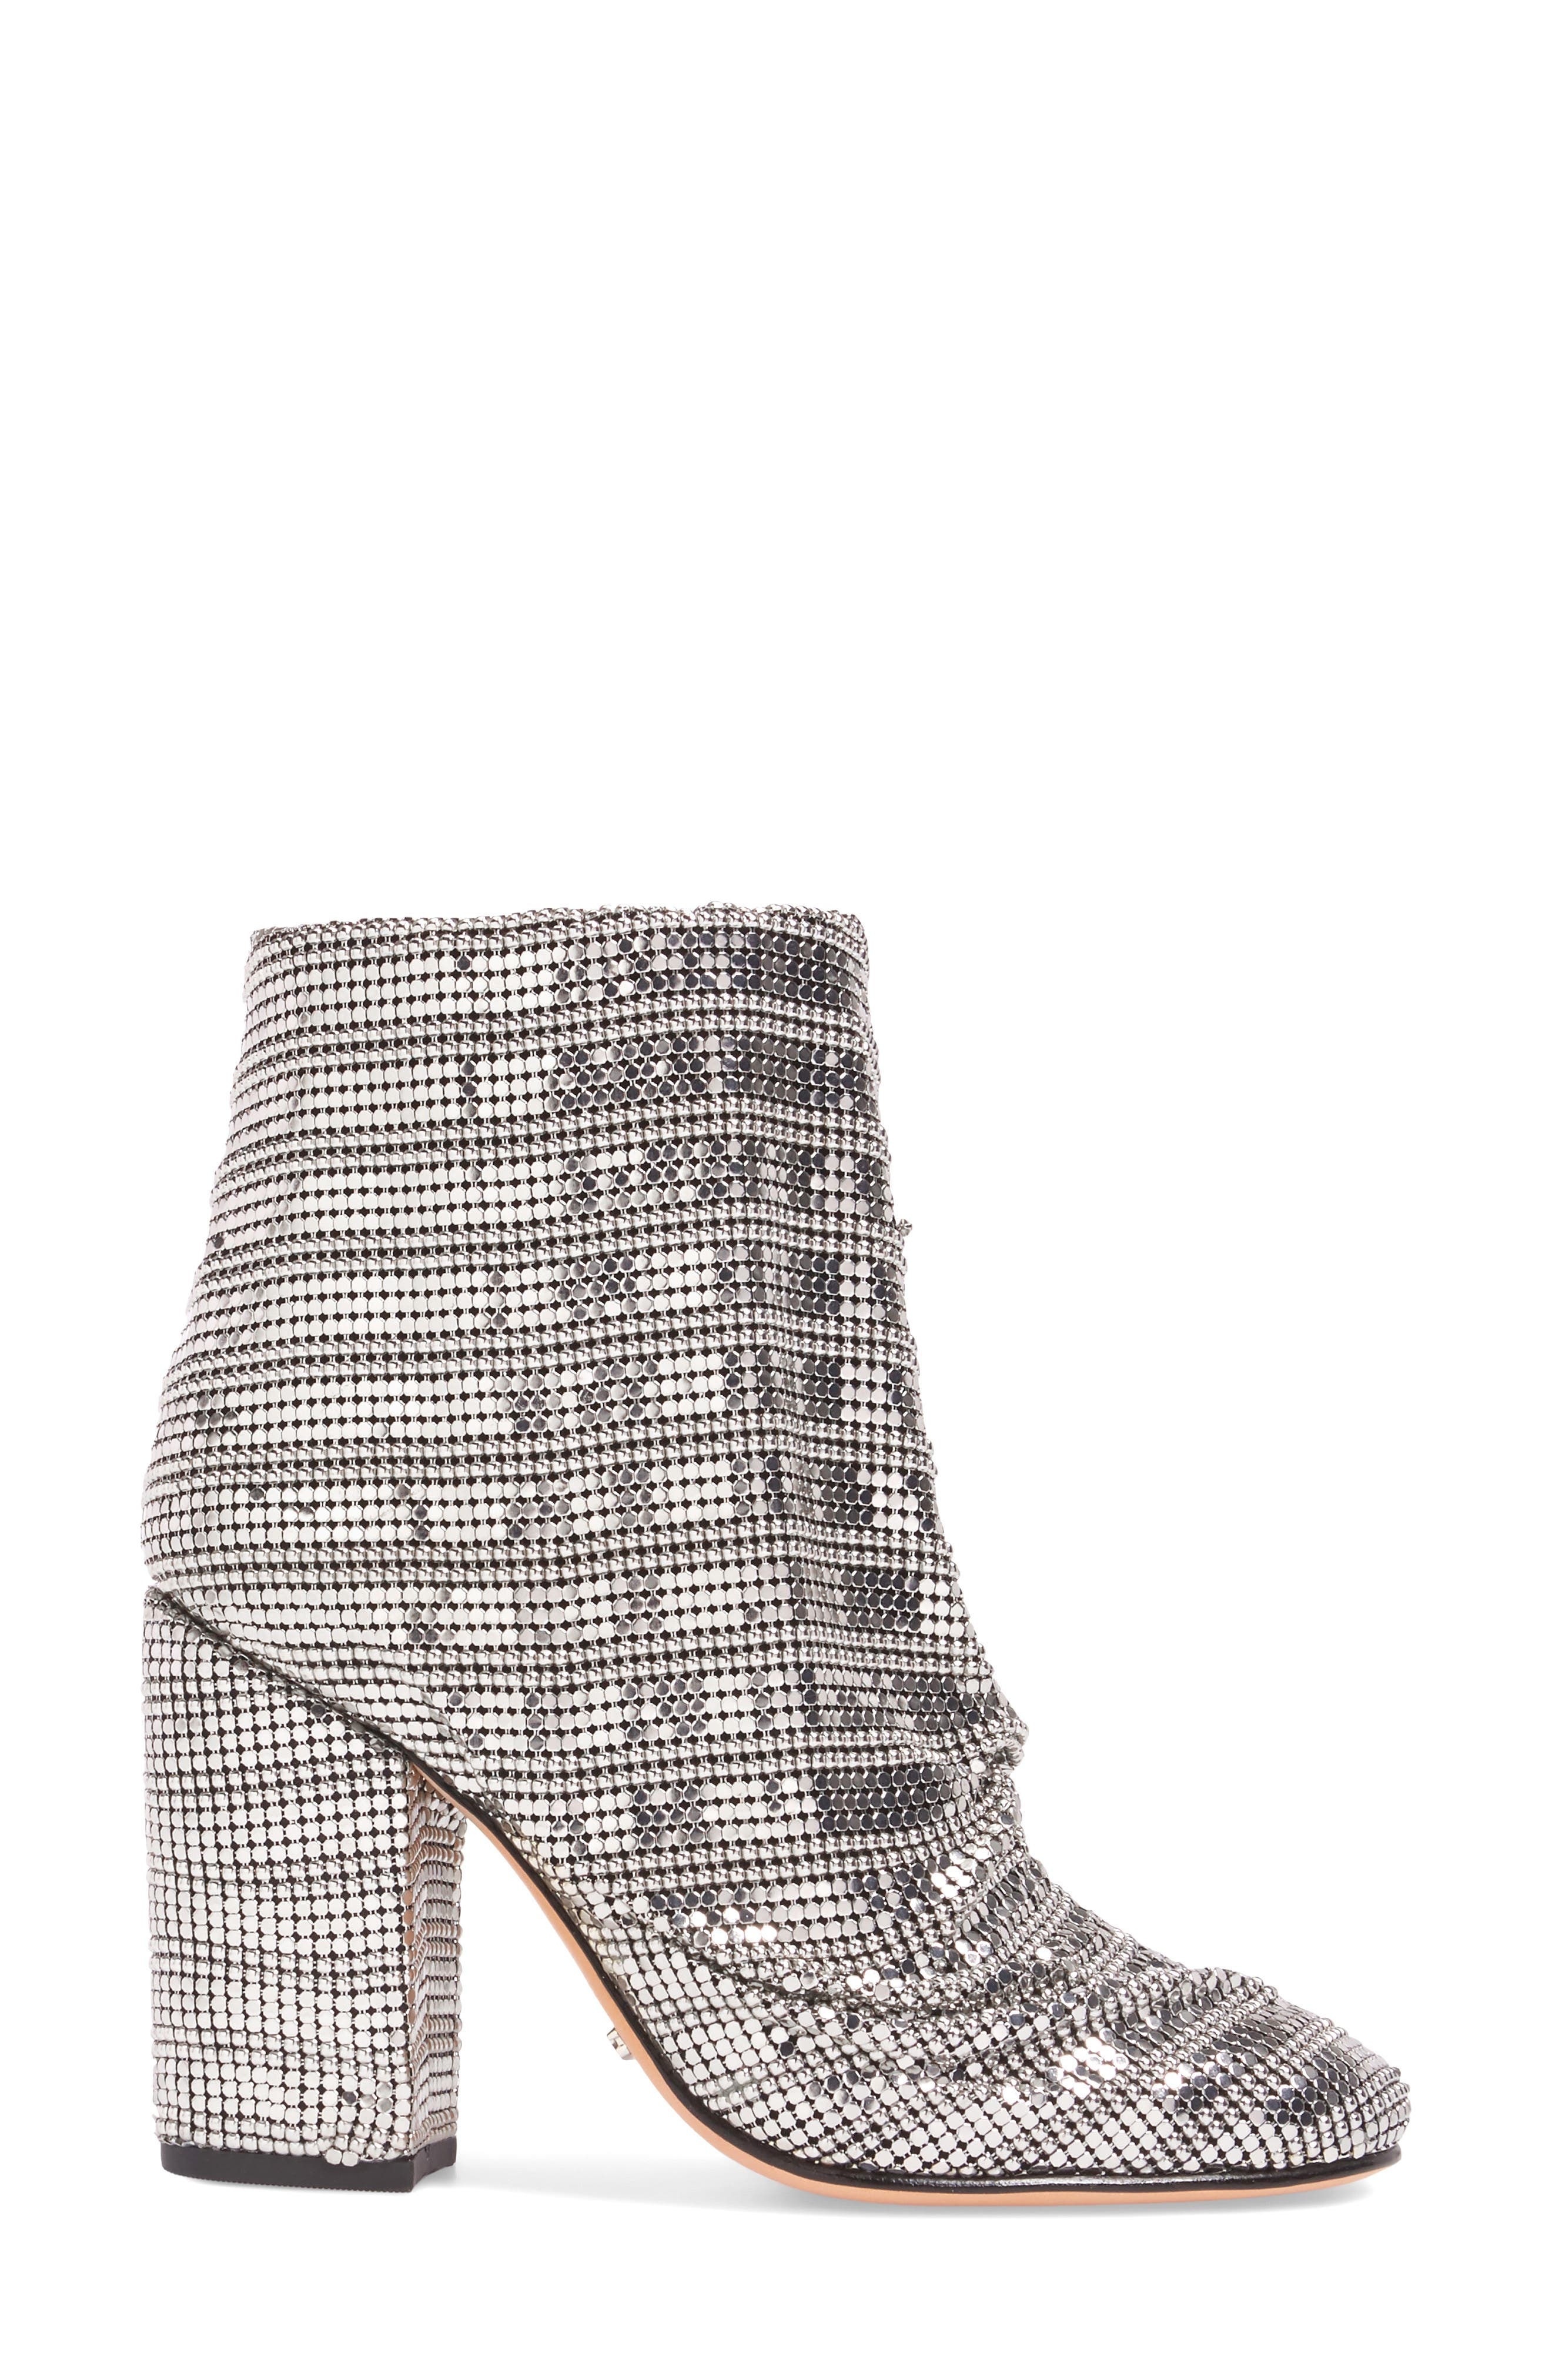 Taise Ruched Mirror Mesh Bootie,                             Alternate thumbnail 3, color,                             100